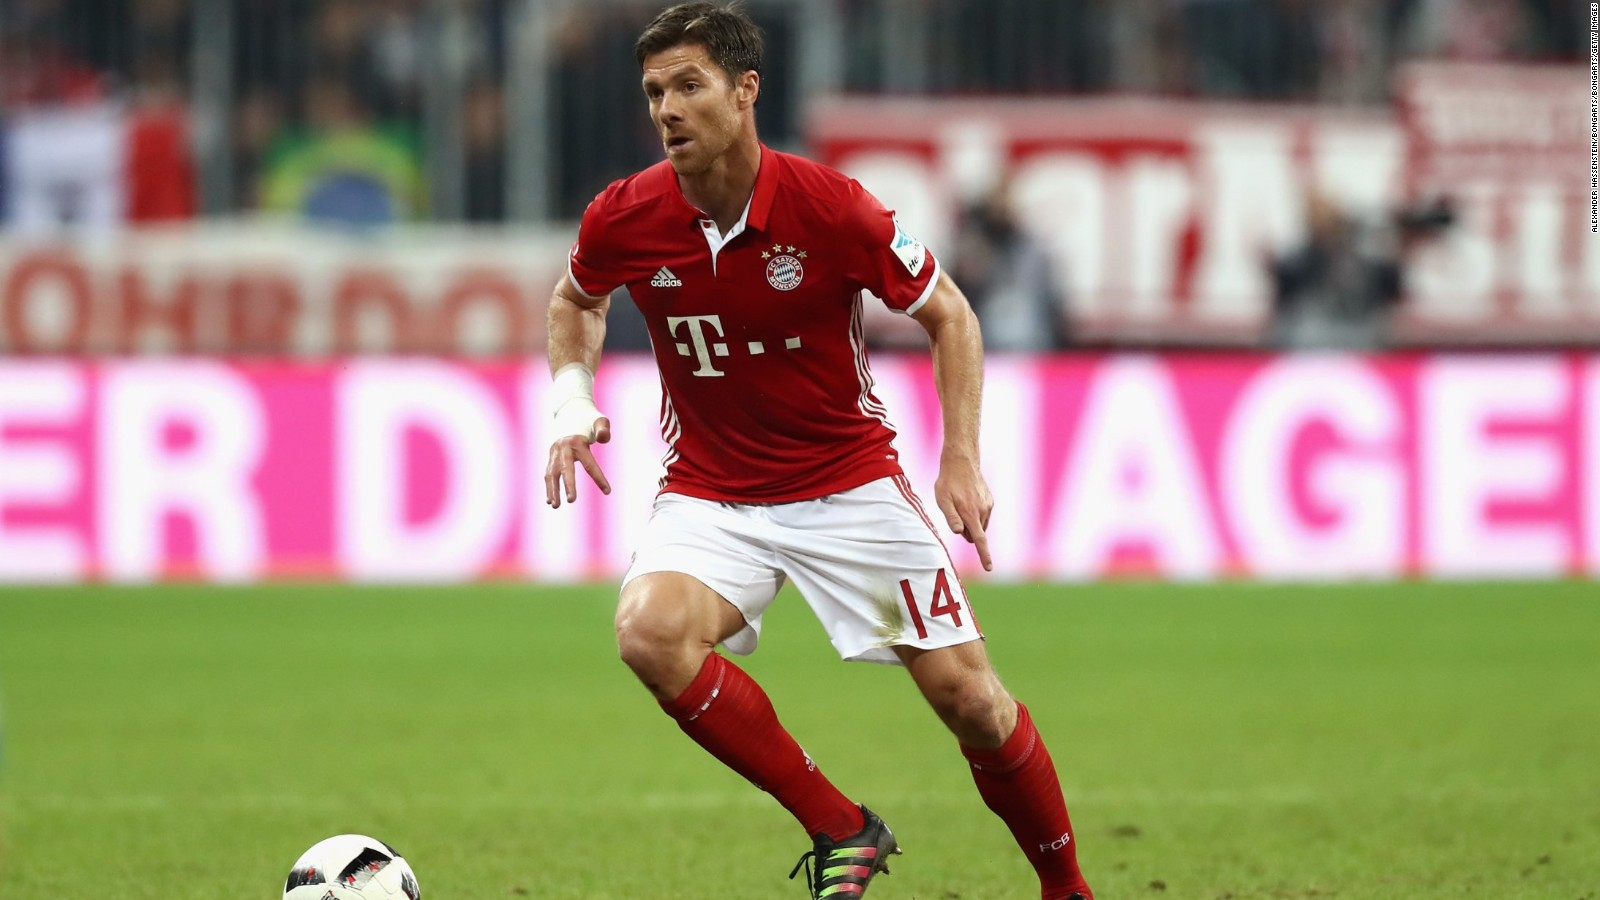 Xabi Alonso Meet the player who has won it all CNN